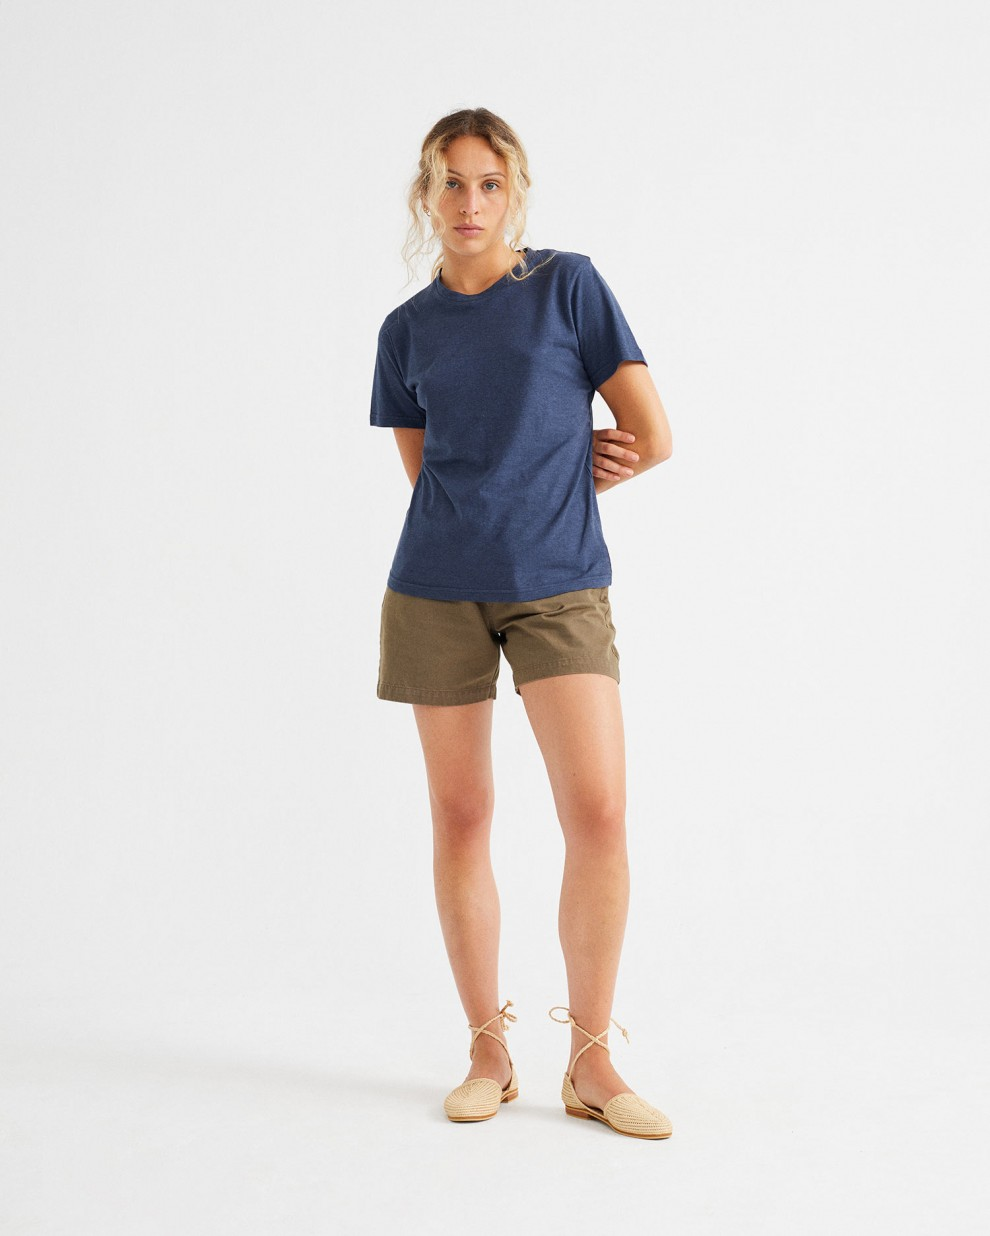 CAMISETA HEMP JUNO NAVY